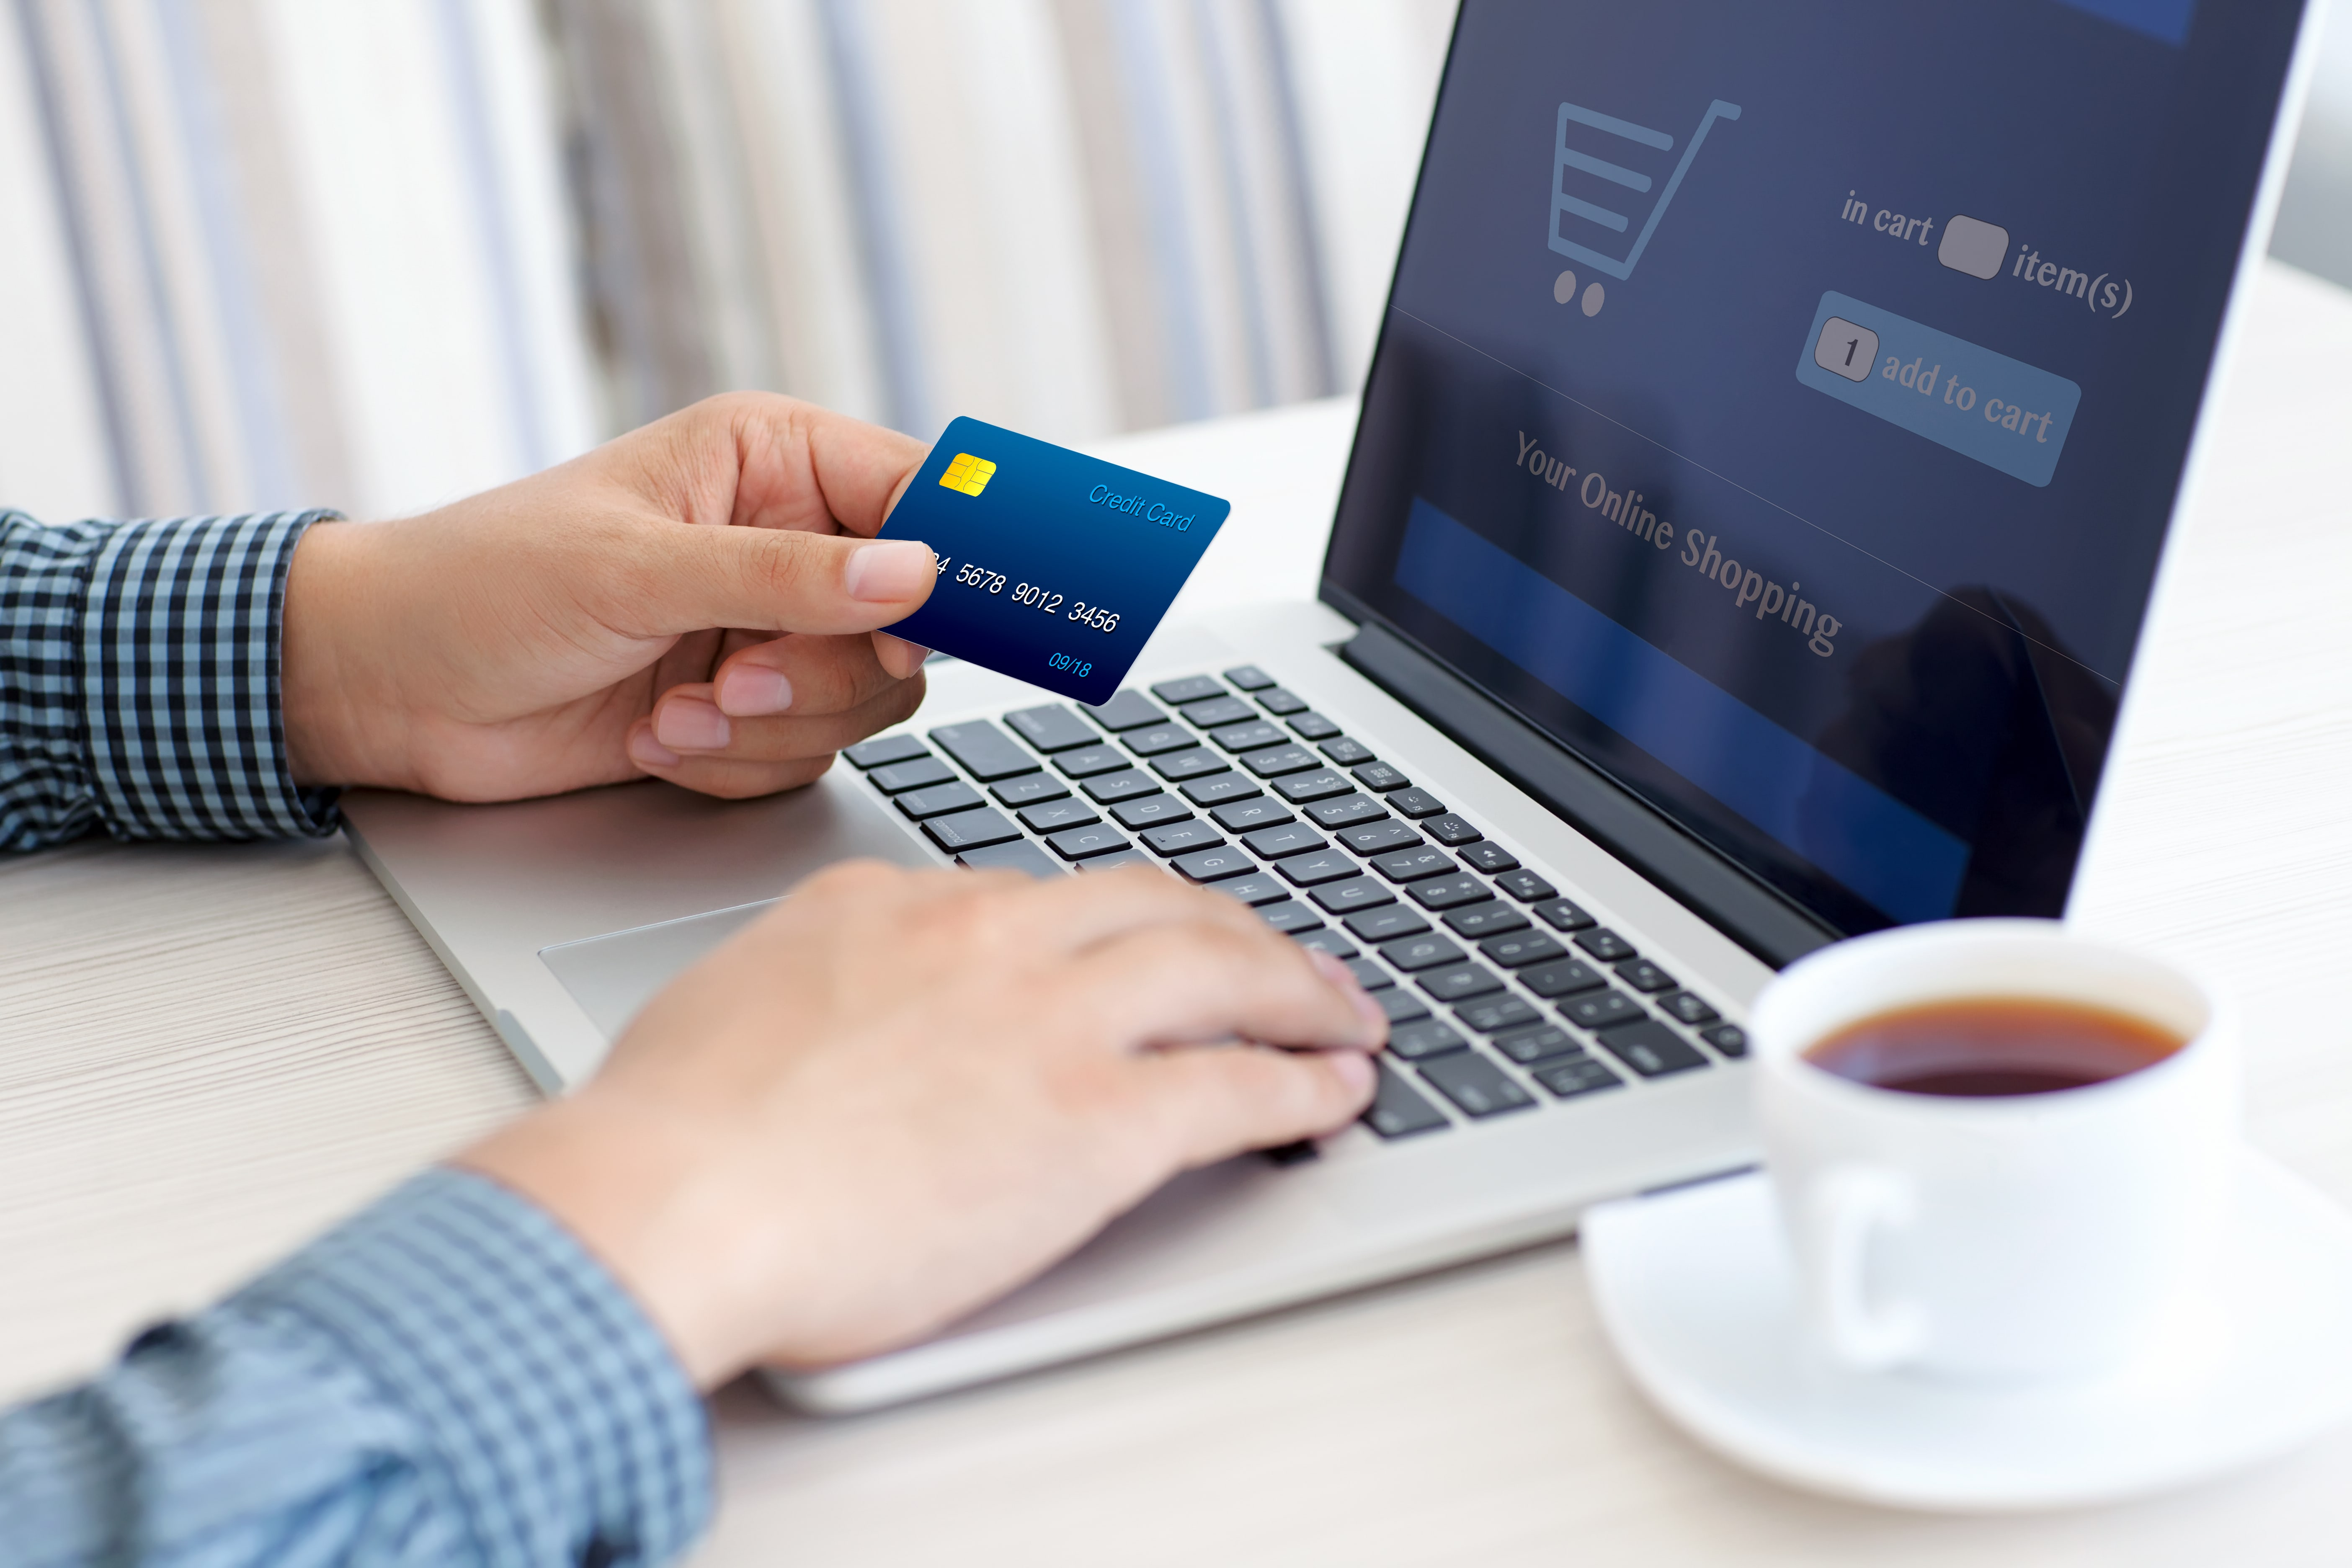 6 Significant Effects of E-Commerce in the Warehouse Industry